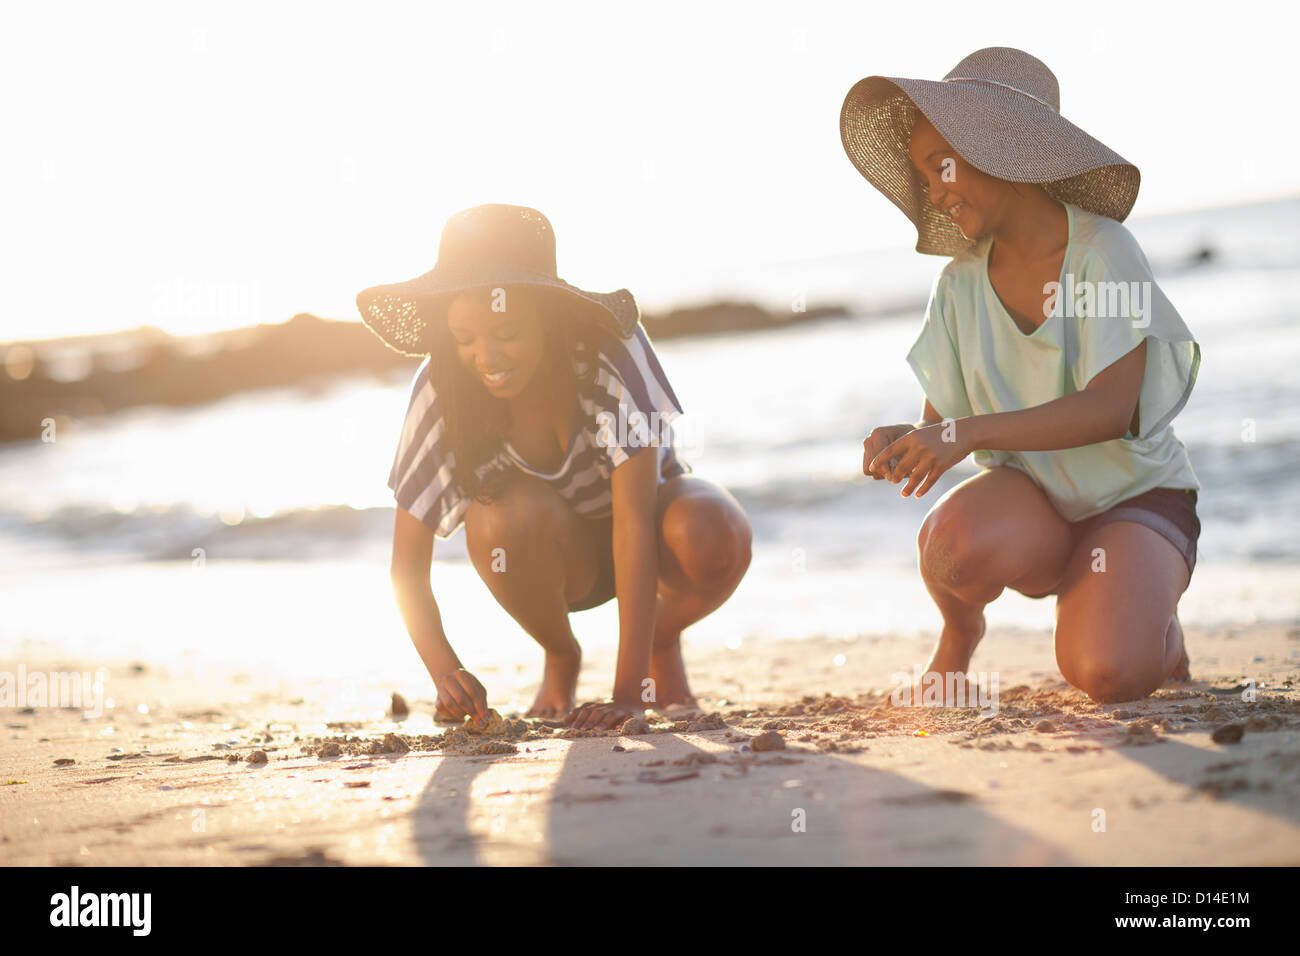 Women drawing in sand on beach - Stock Image